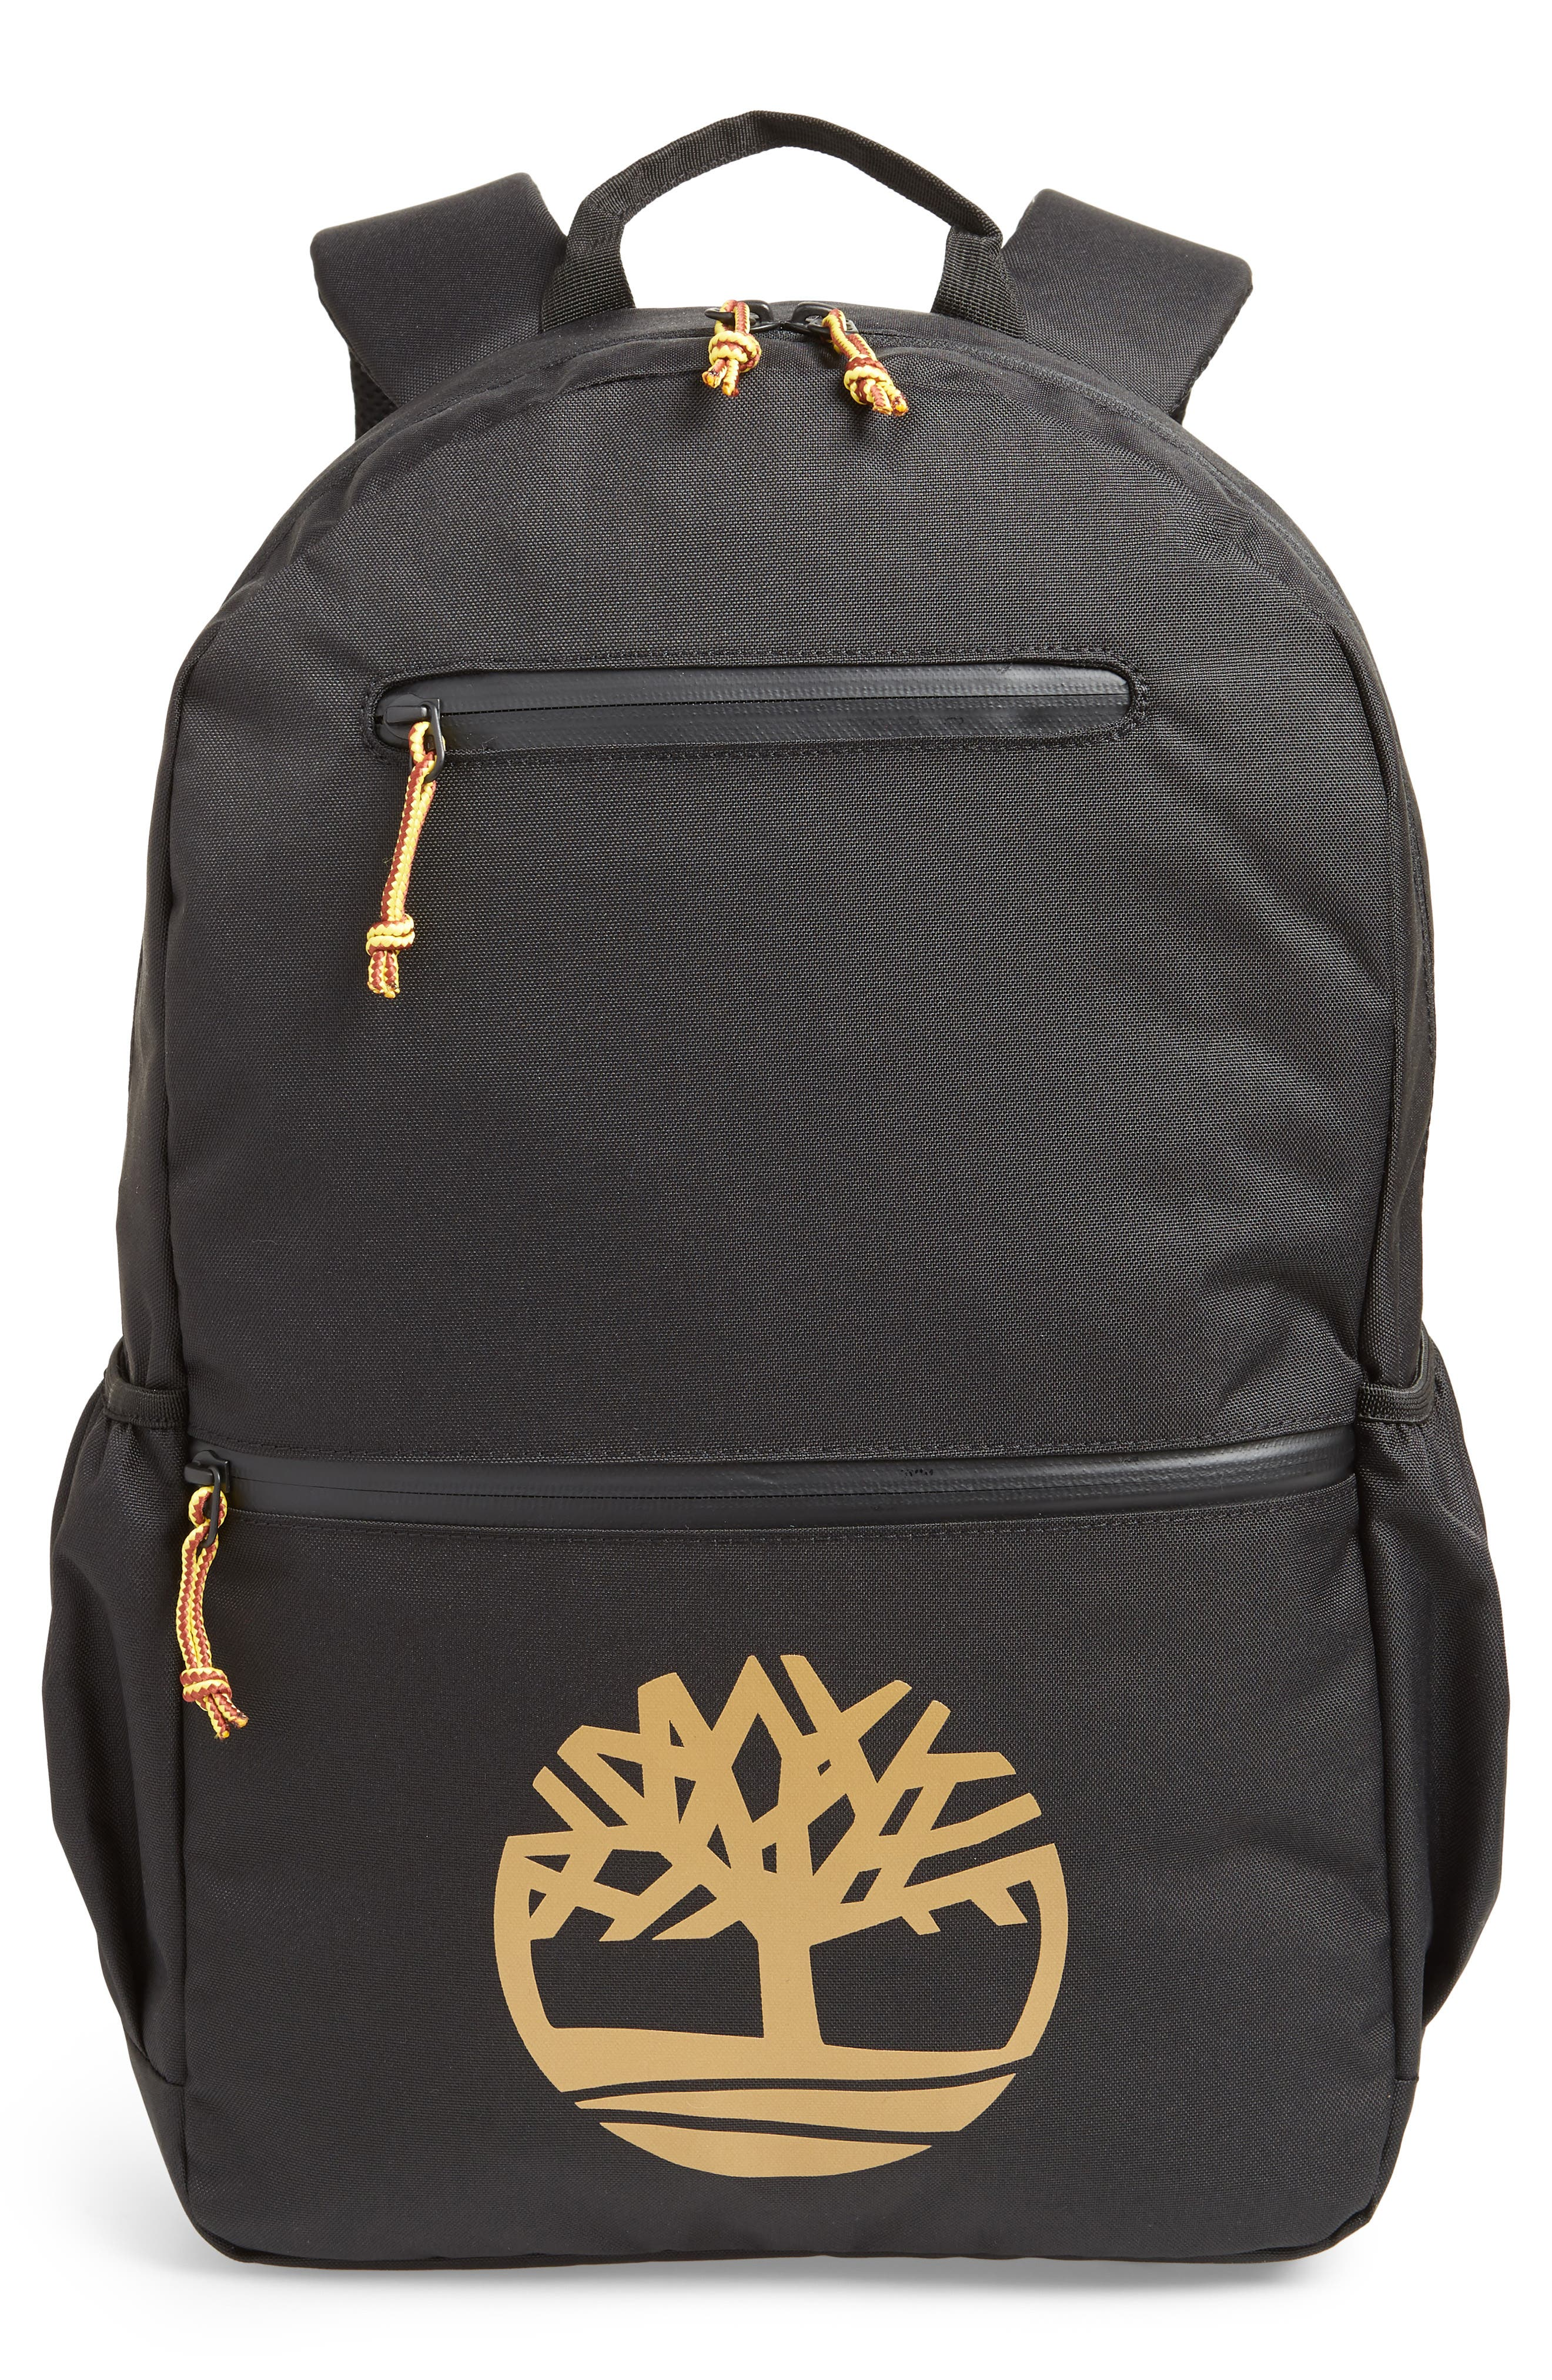 TIMBERLAND, Logo Graphic Water Resistant Backpack, Main thumbnail 1, color, BLACK